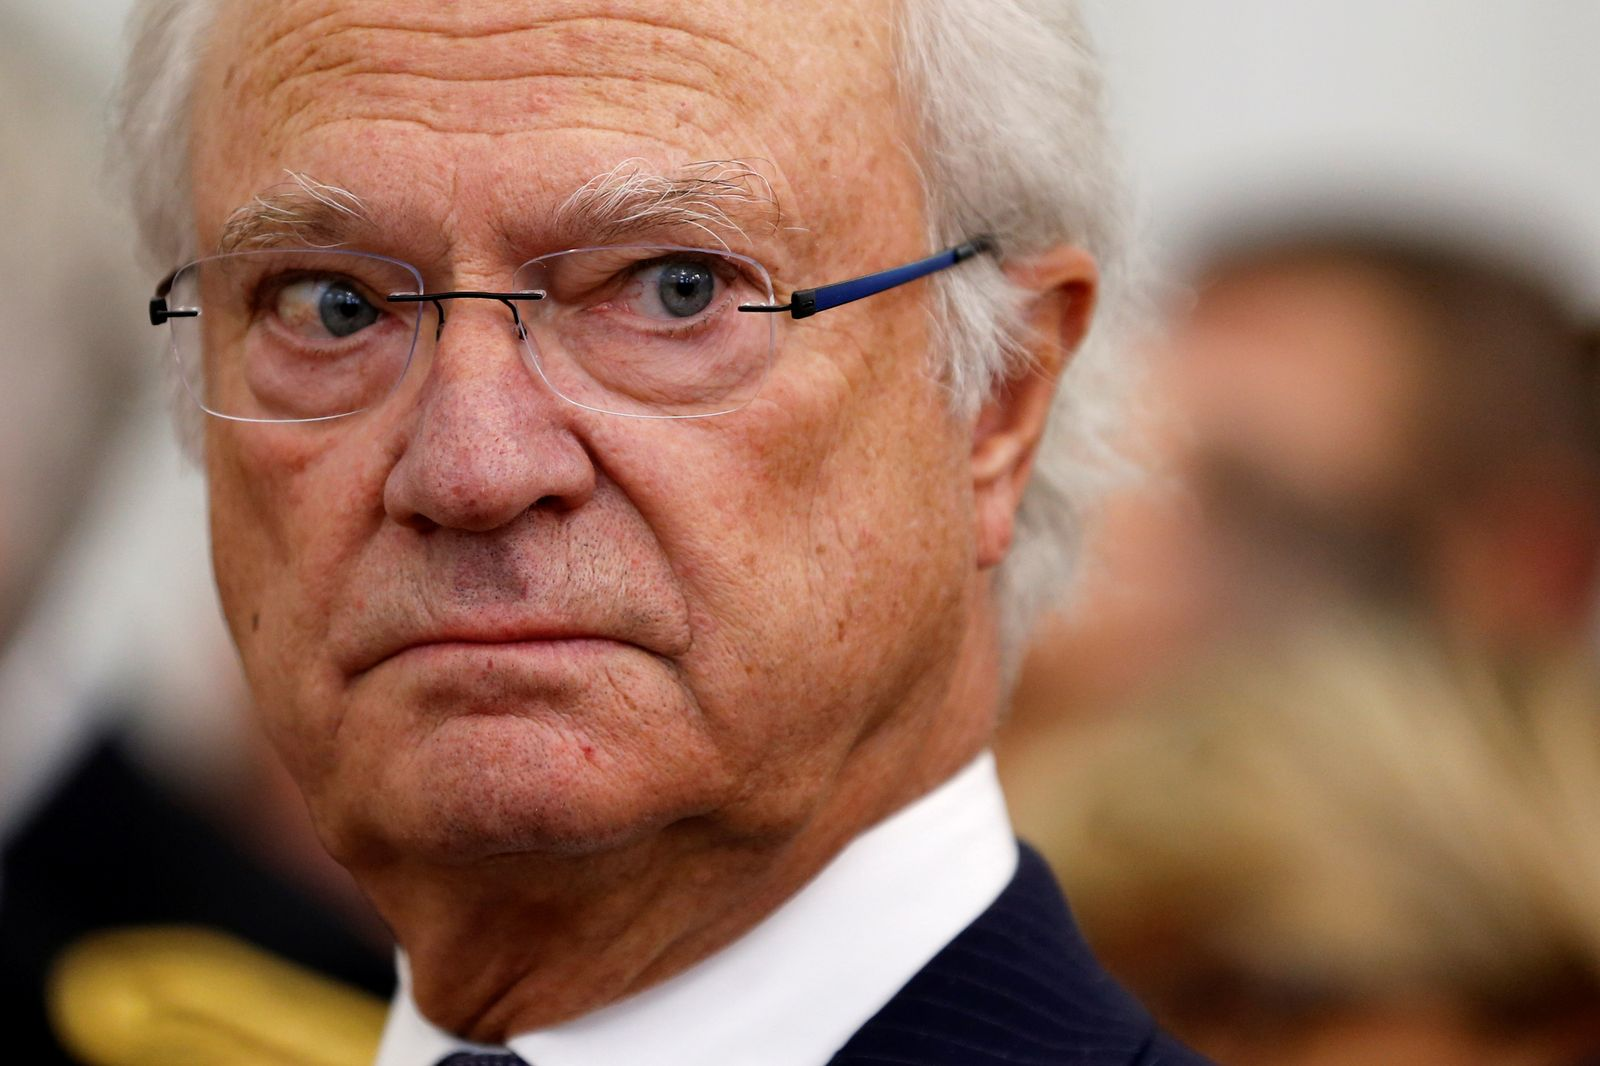 Sweden's King Carl XVI Gustaf attends a ceremony at the city hall as part of a visit for the bicentenary of the Swedish throne in Pau